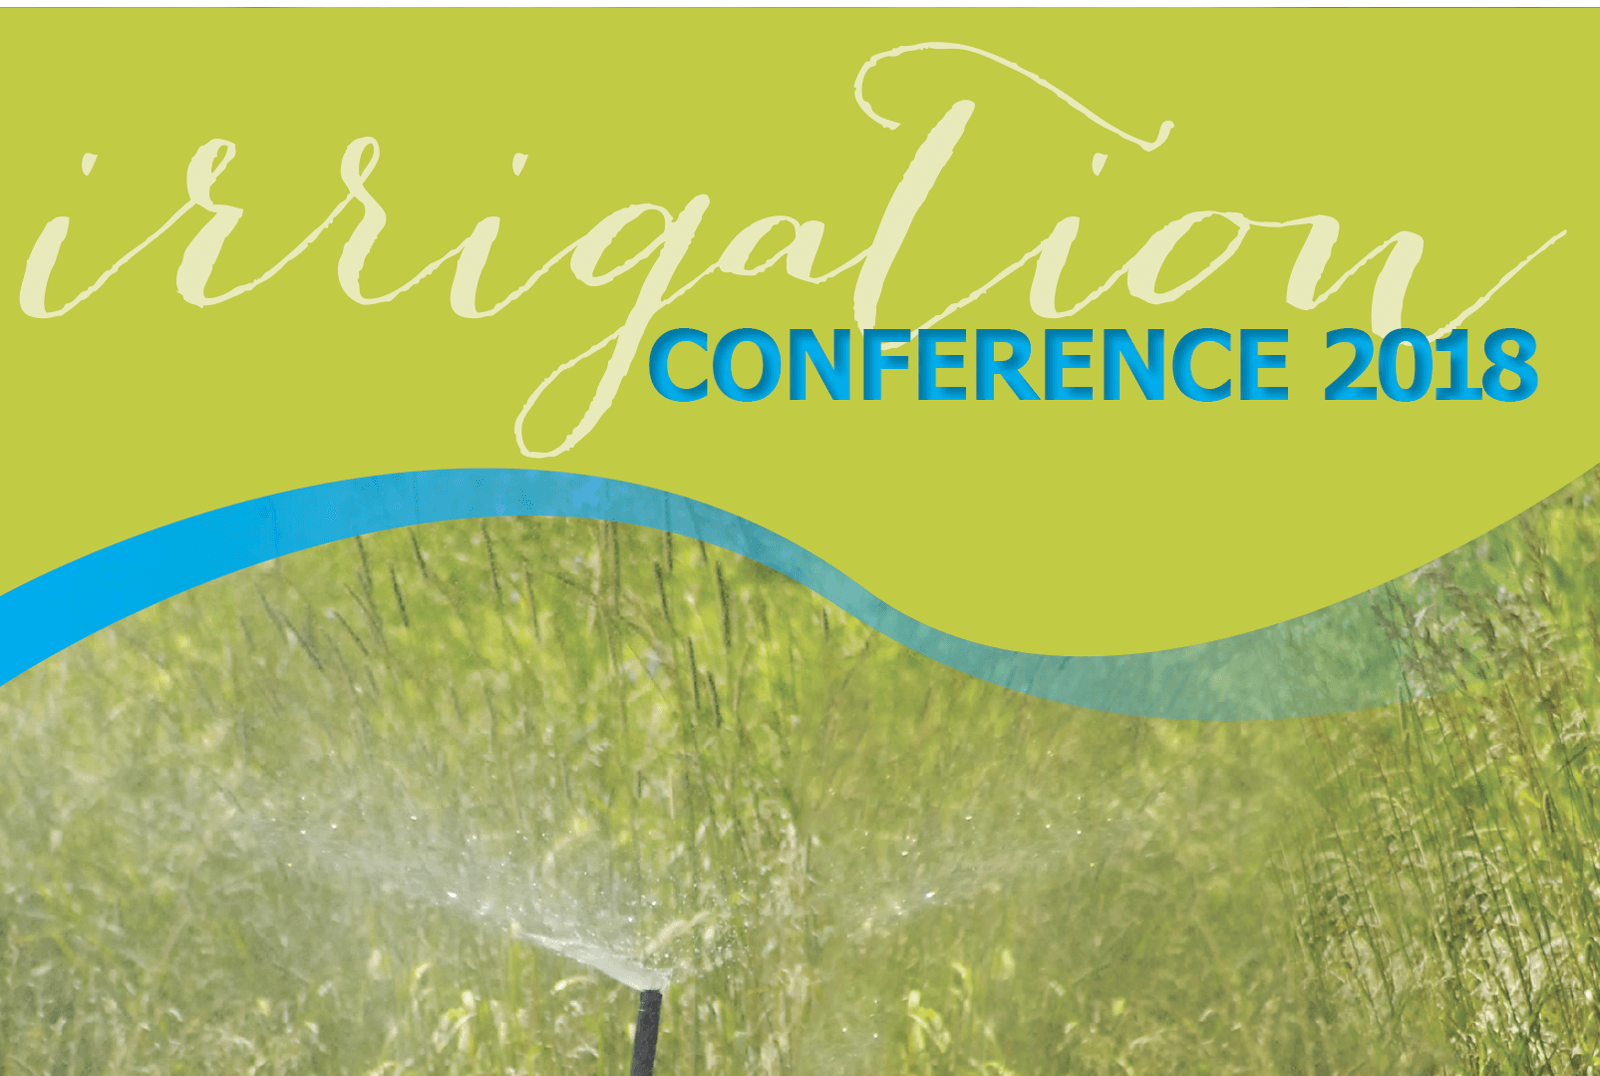 Irrigation Conference 2018